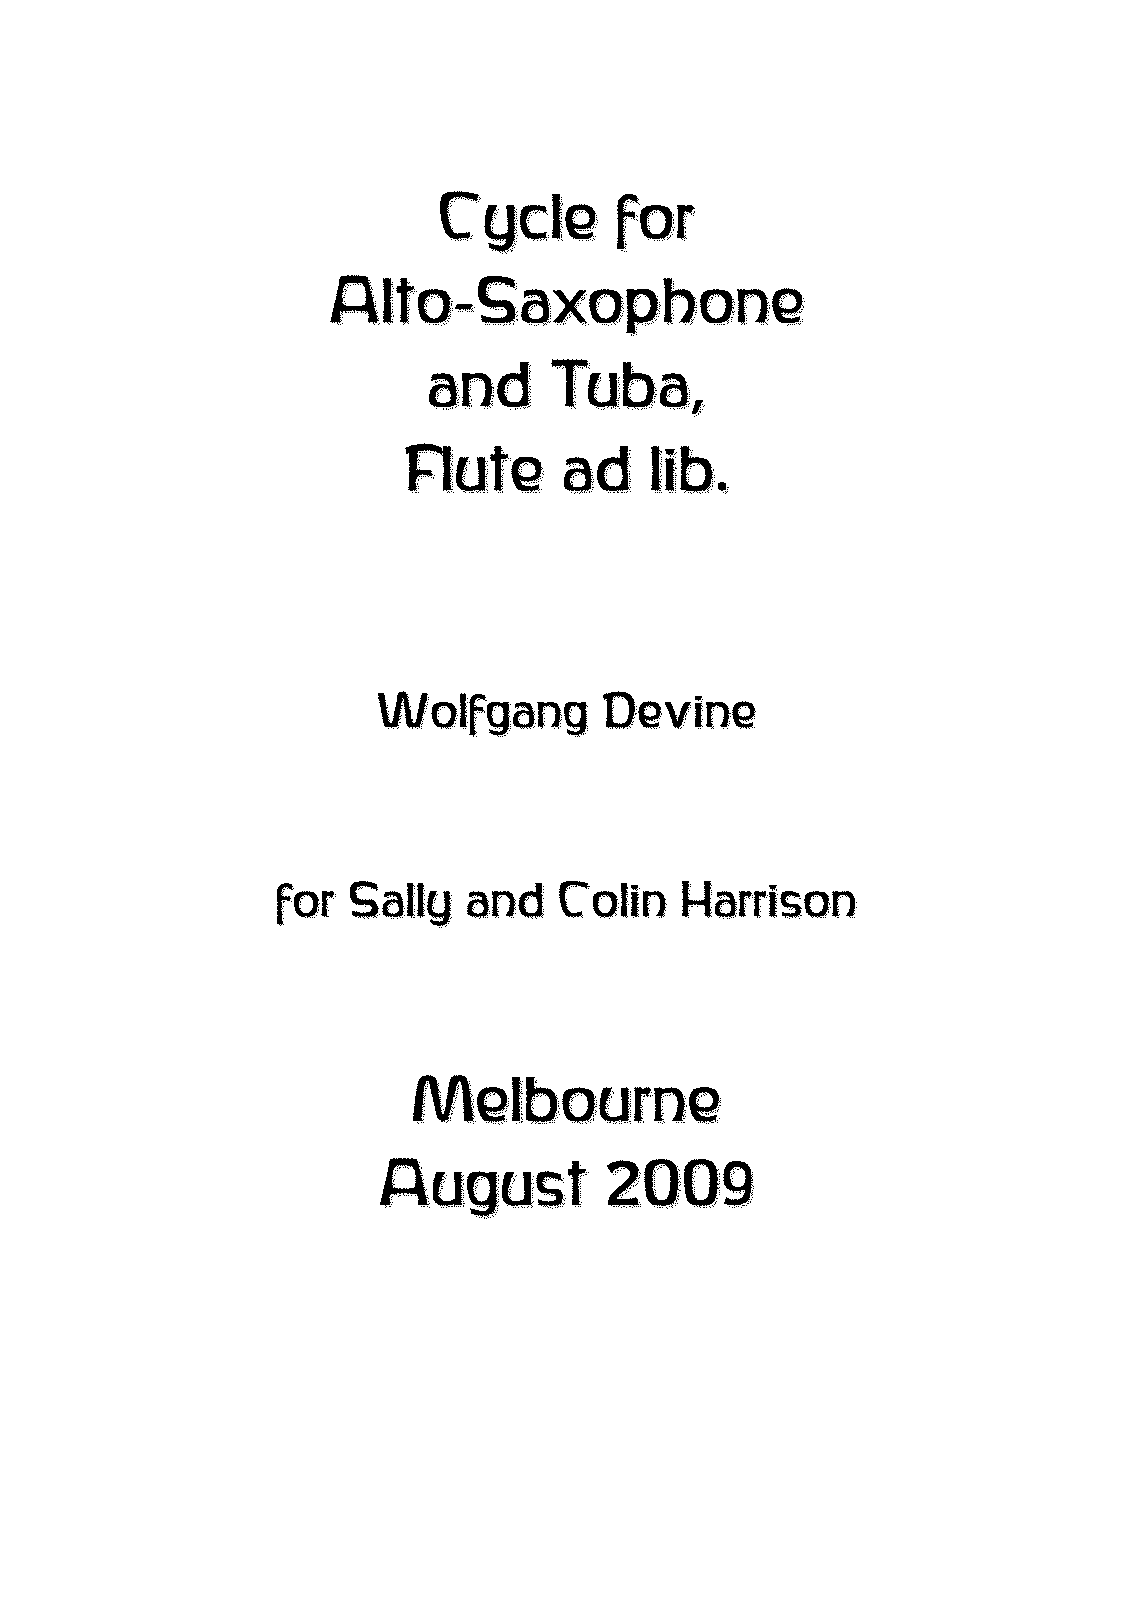 PMLP208810-Cycle for Tuba and Alt-Sax 2009.pdf